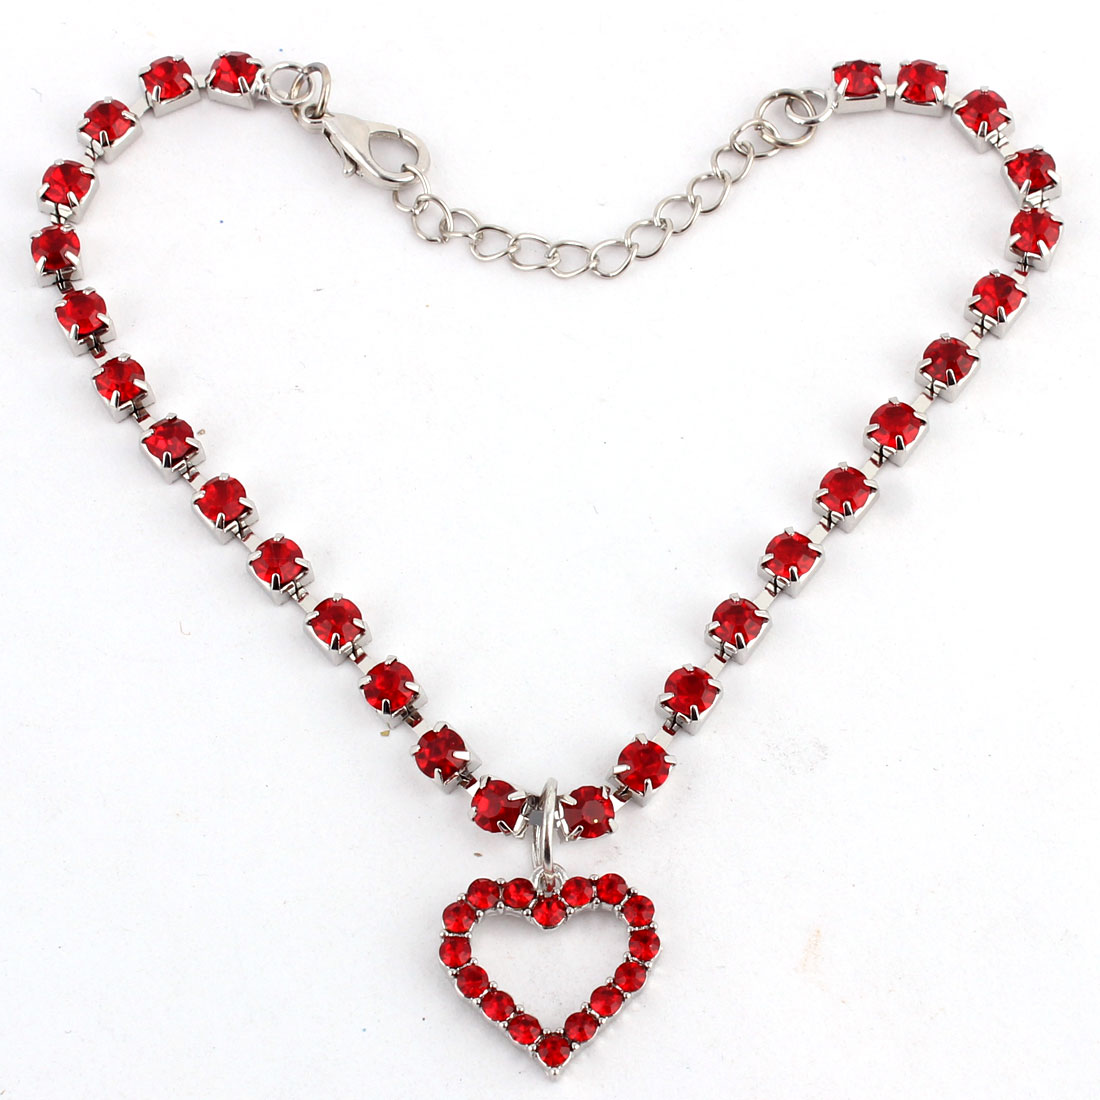 Dog Metal Beads Linked Rhinestone Inlaid Heart Shaped Pendant Necklace Red